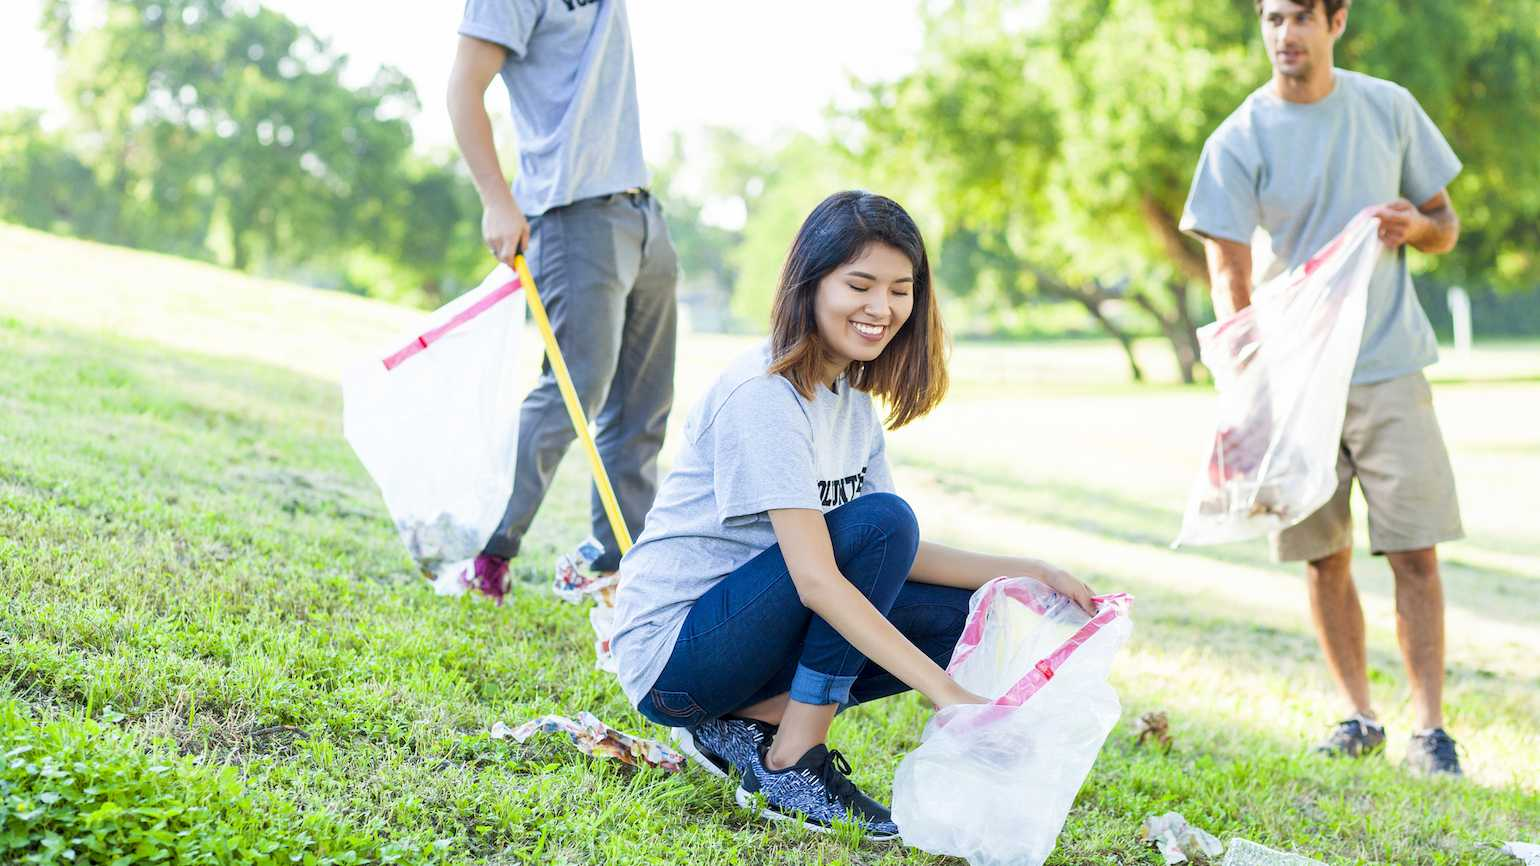 Helping pick up trash in a park